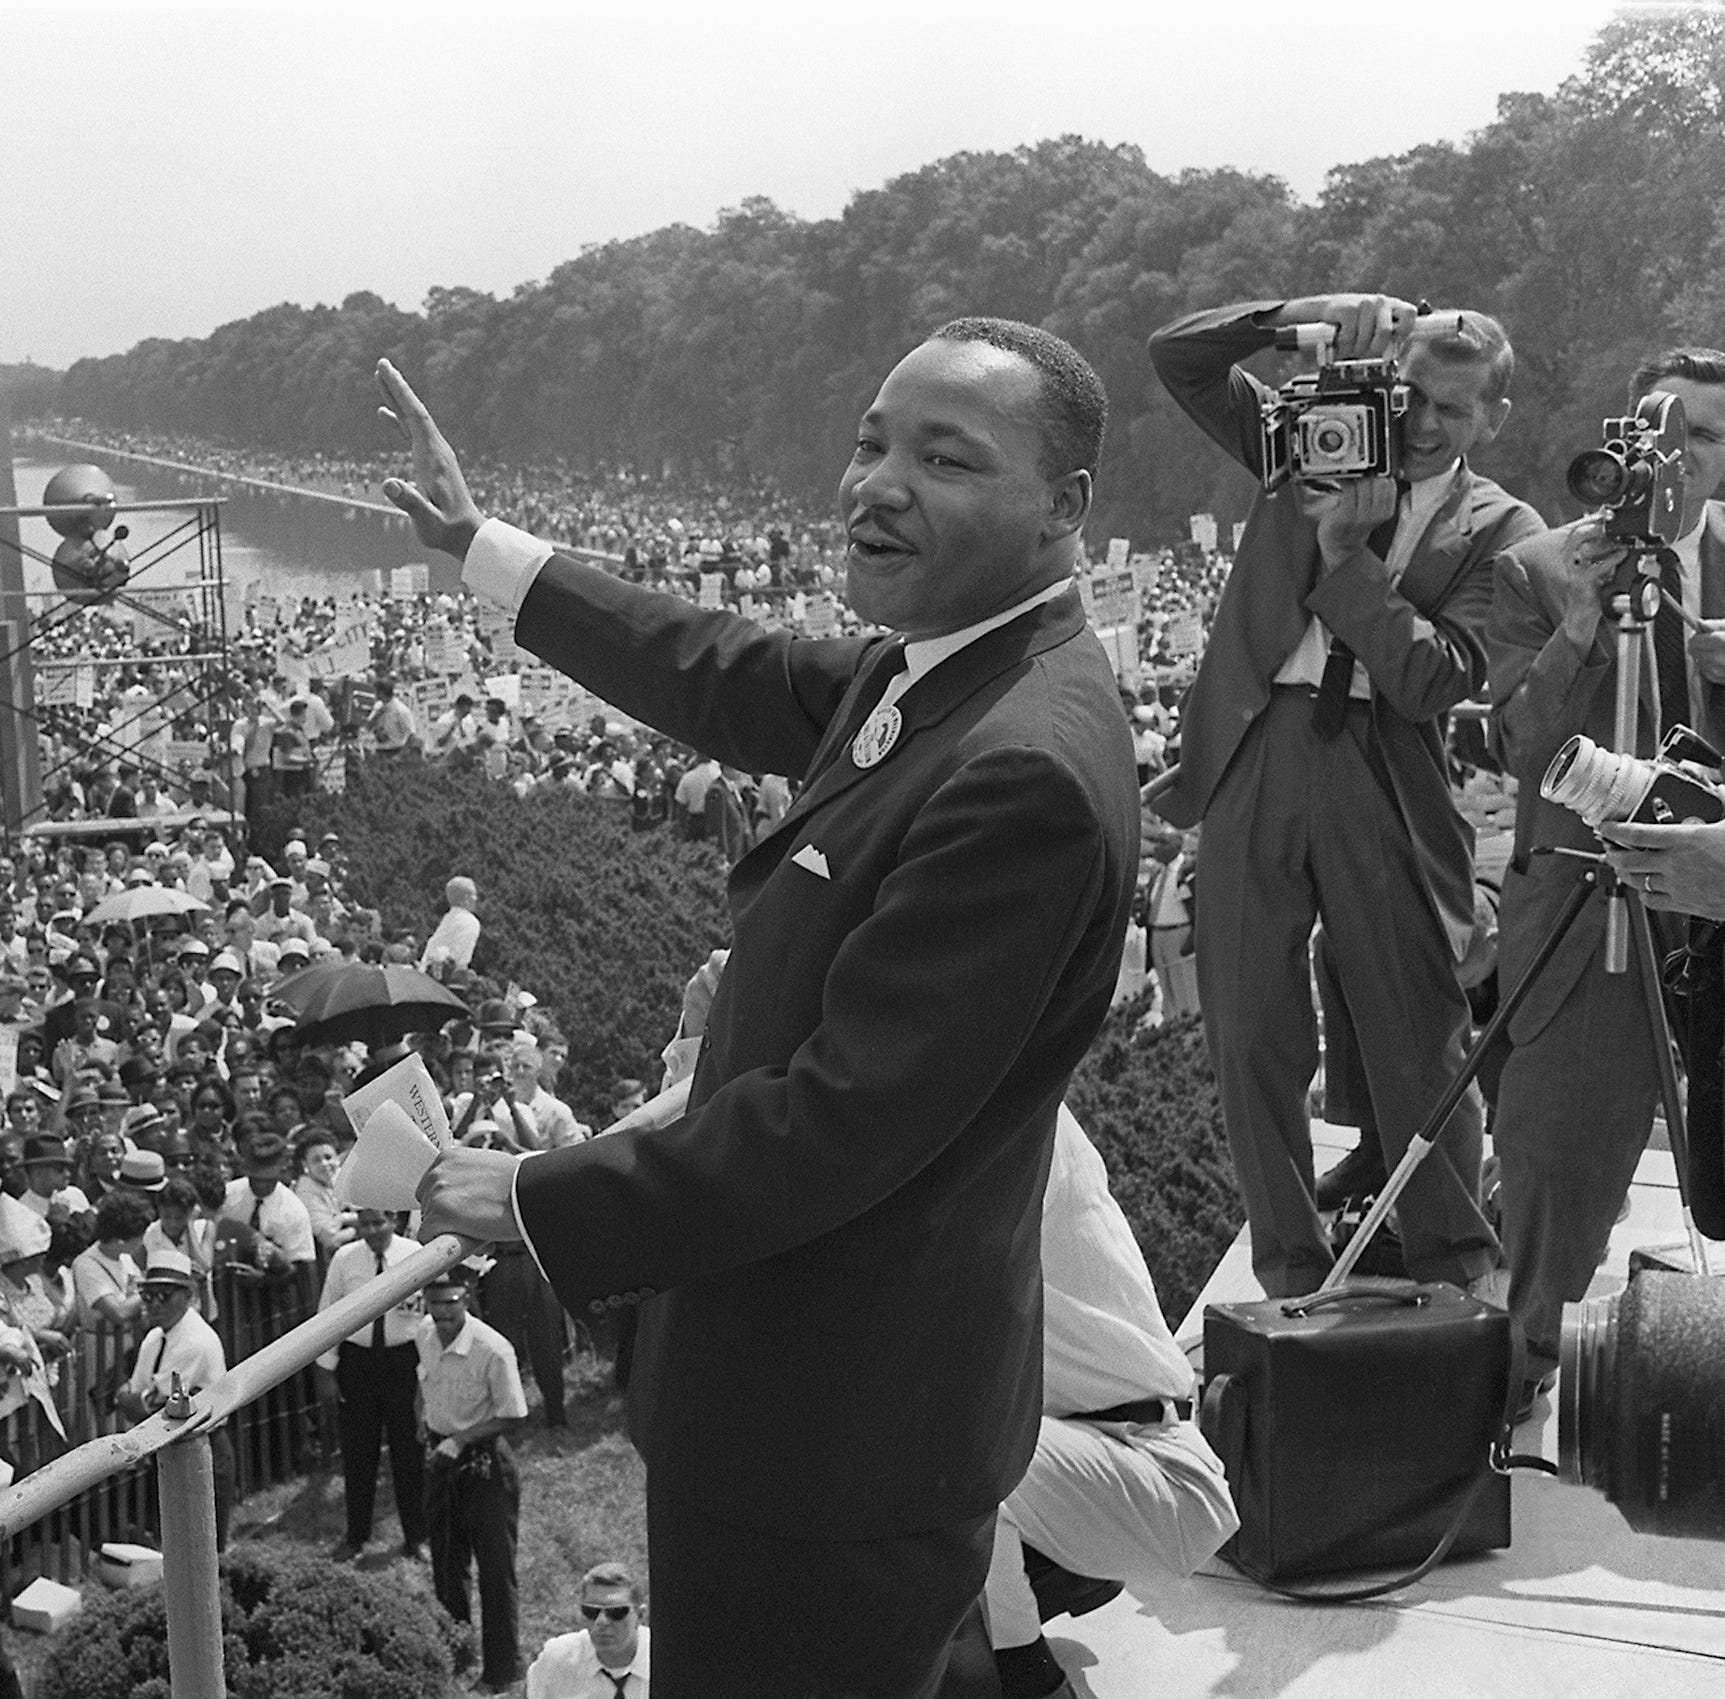 Martin Luther King Jr. quotes: 10 most popular from the civil rights leader